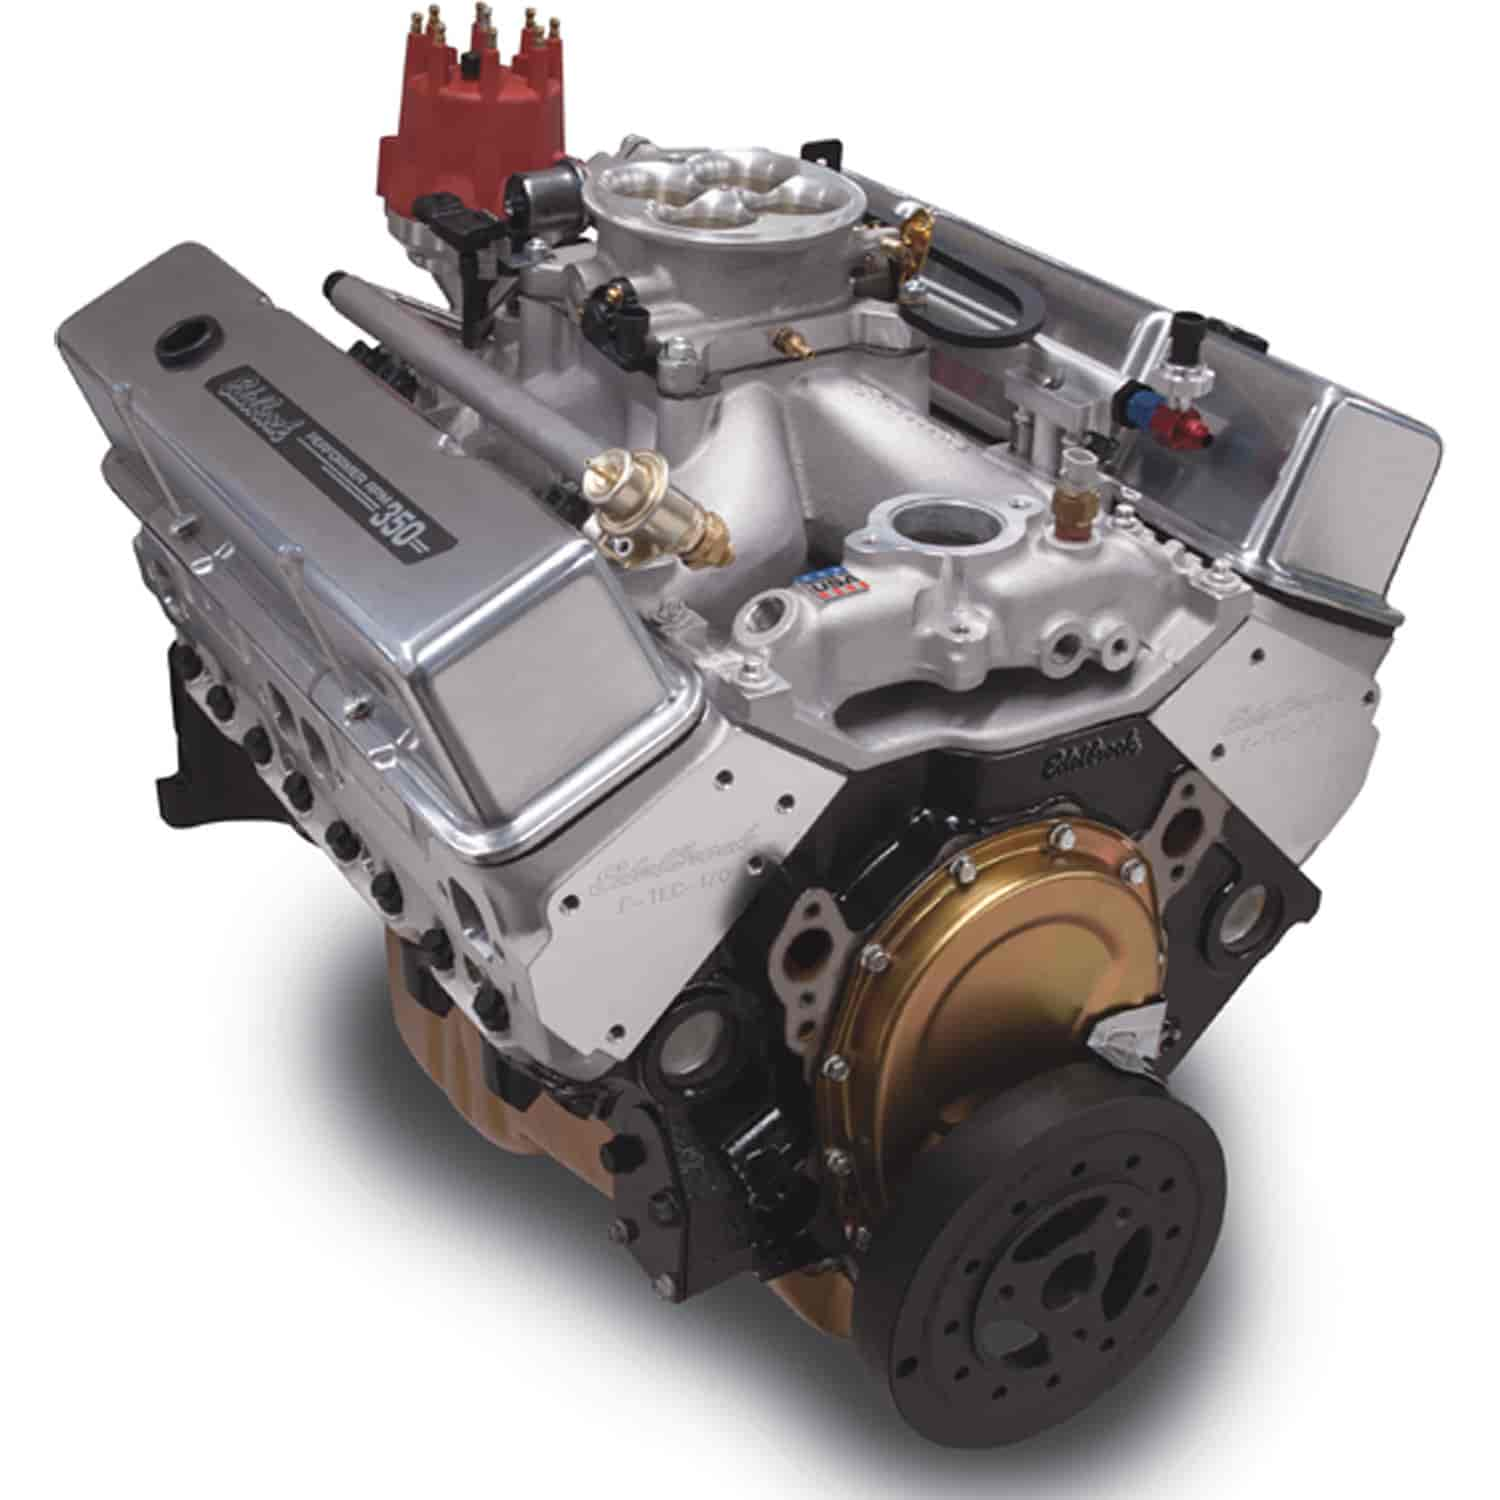 Edelbrock Performer RPM E-Tec Small Block Chevy 350ci / 440 hp Polished  Crate Engine with RPM Air-Gap Intake & Pro-Flo 3 EFI